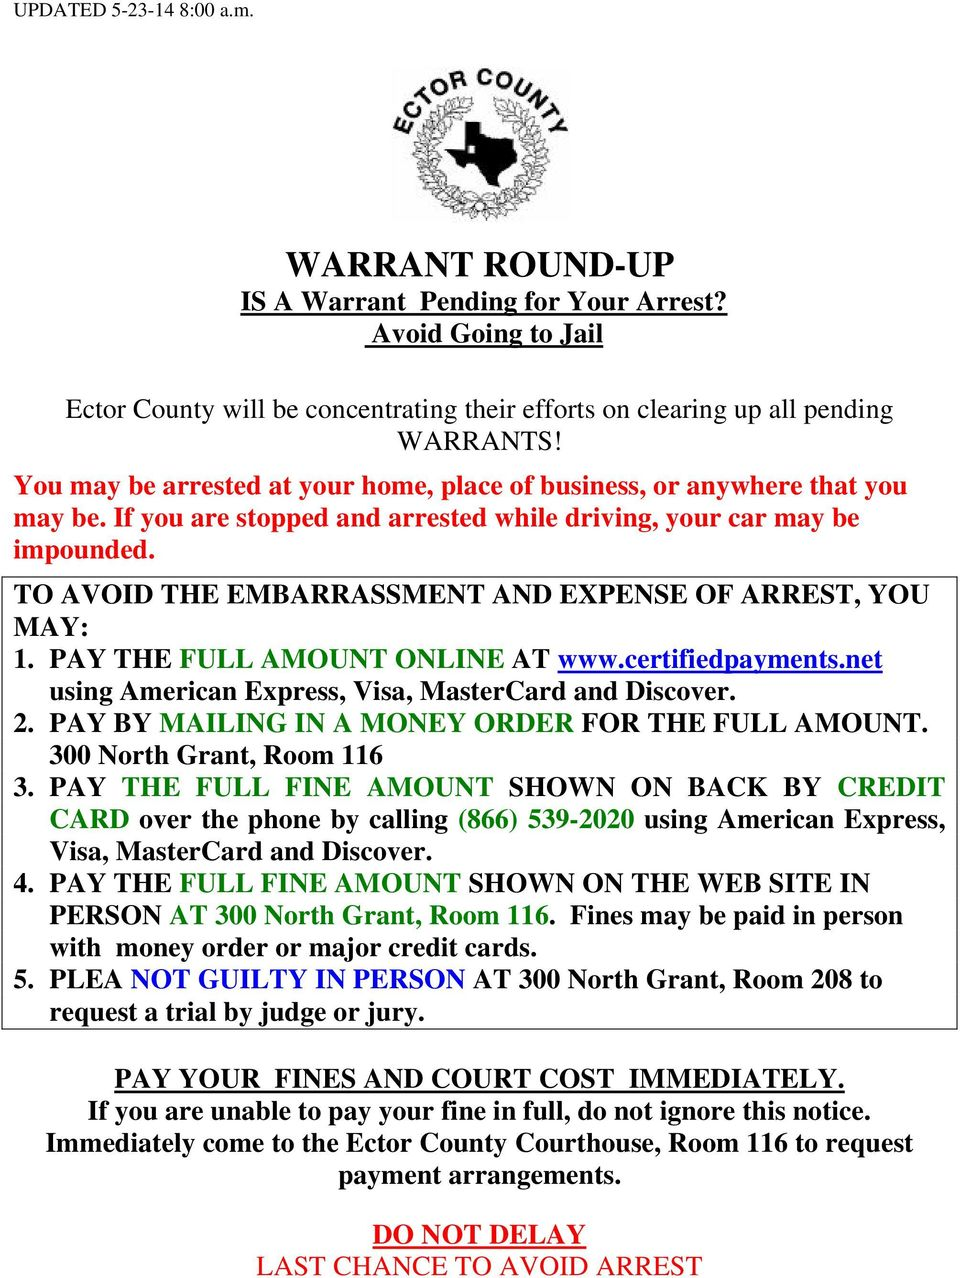 WARRANT ROUND-UP IS A Warrant Pending for Your Arrest? Avoid Going